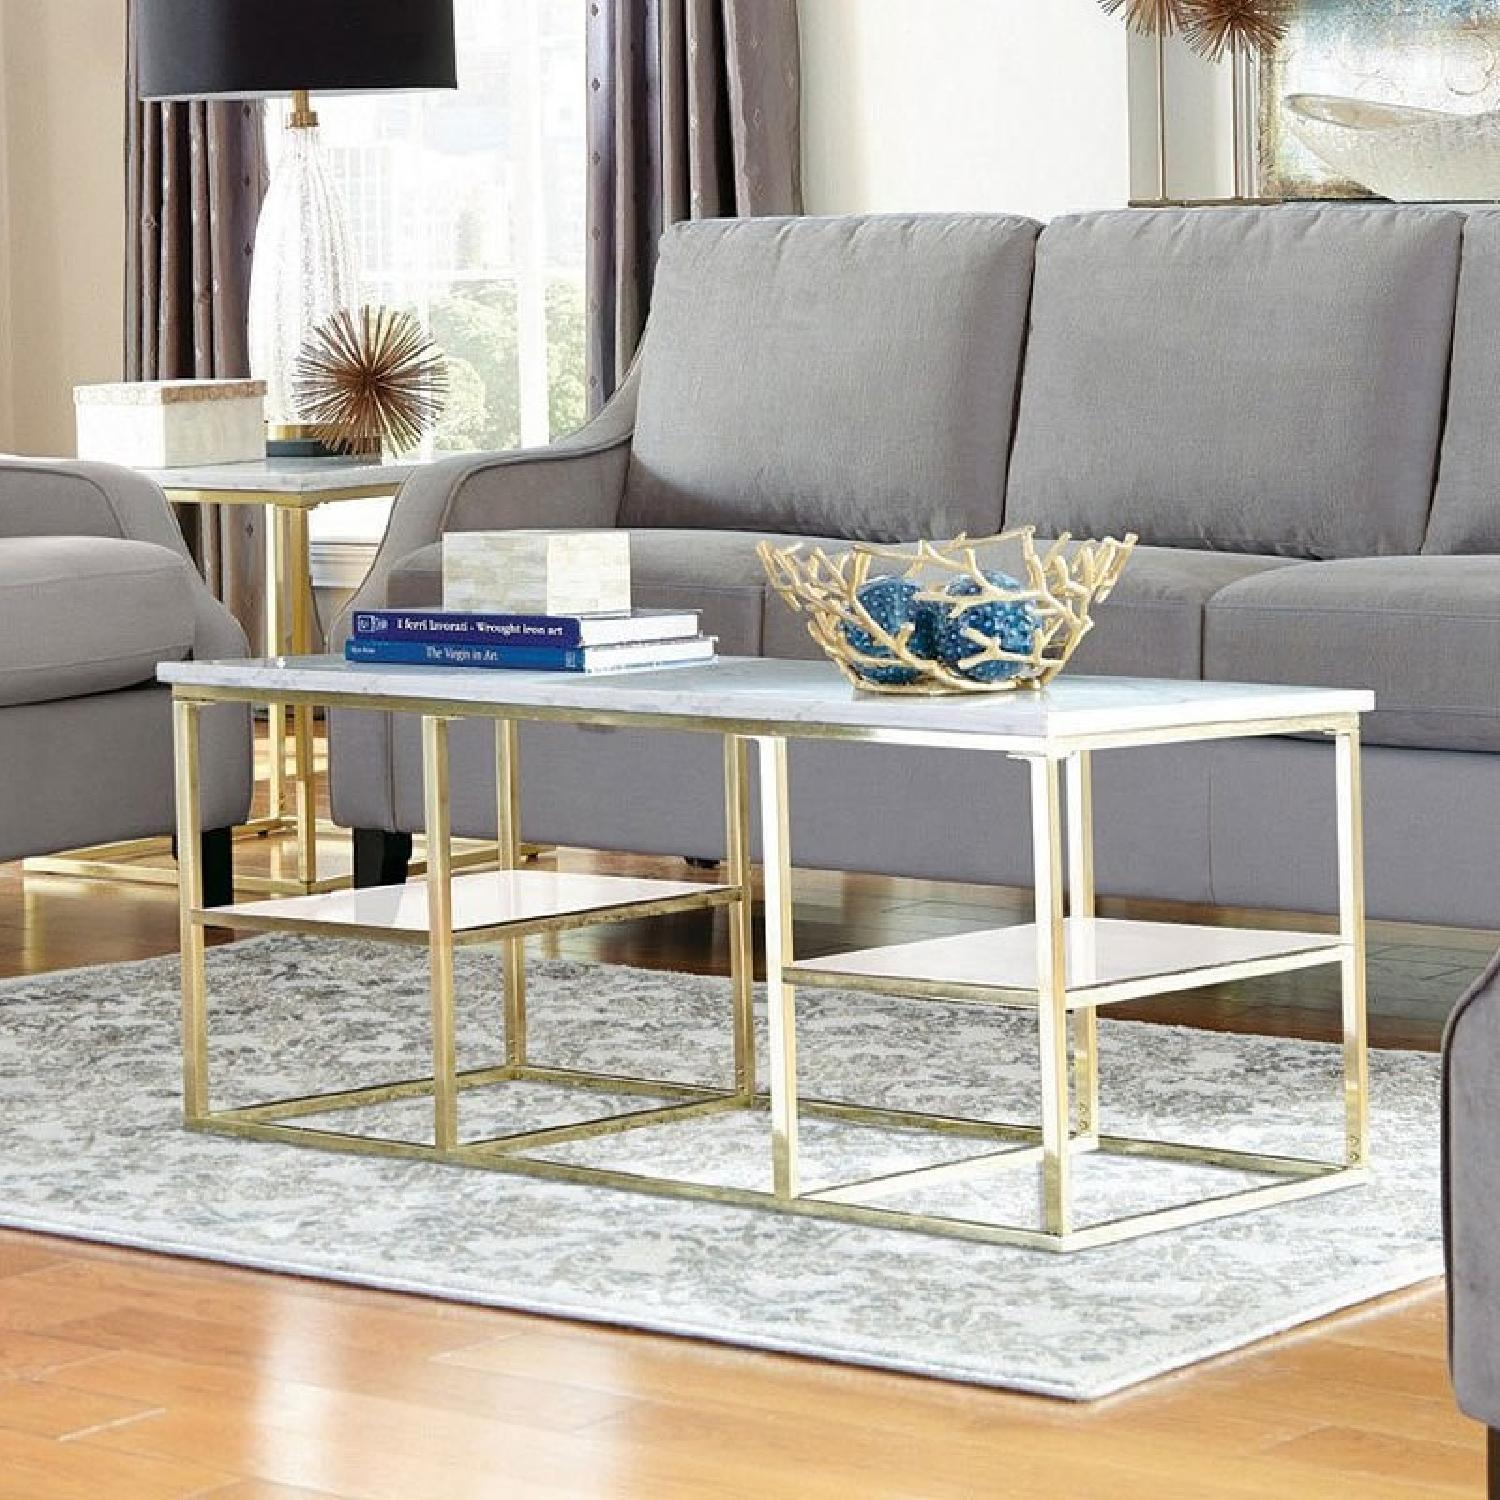 Modern White Marble Top Coffee Table w/ Brushed Brass Legs